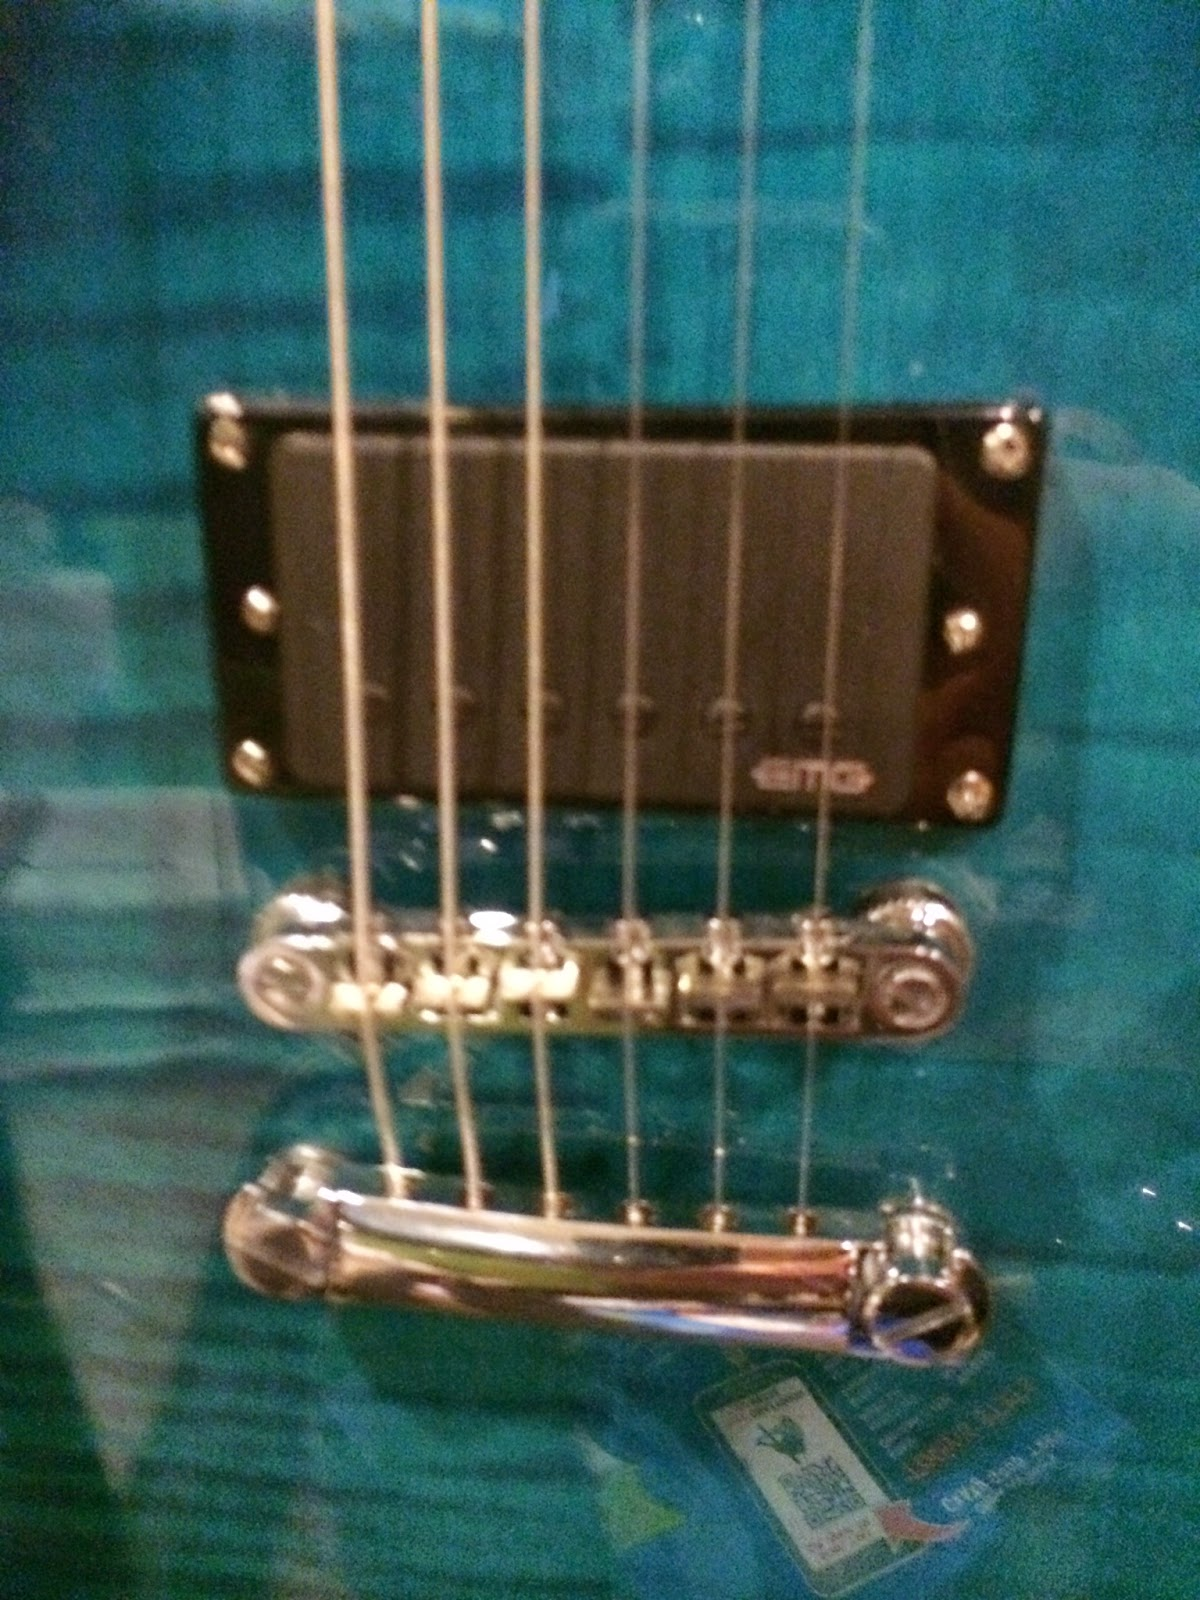 medium resolution of above is the pickup installed in my epiphone custom shop les paul special ii plus top it goes in the bridge position and due to the abq push pull volume